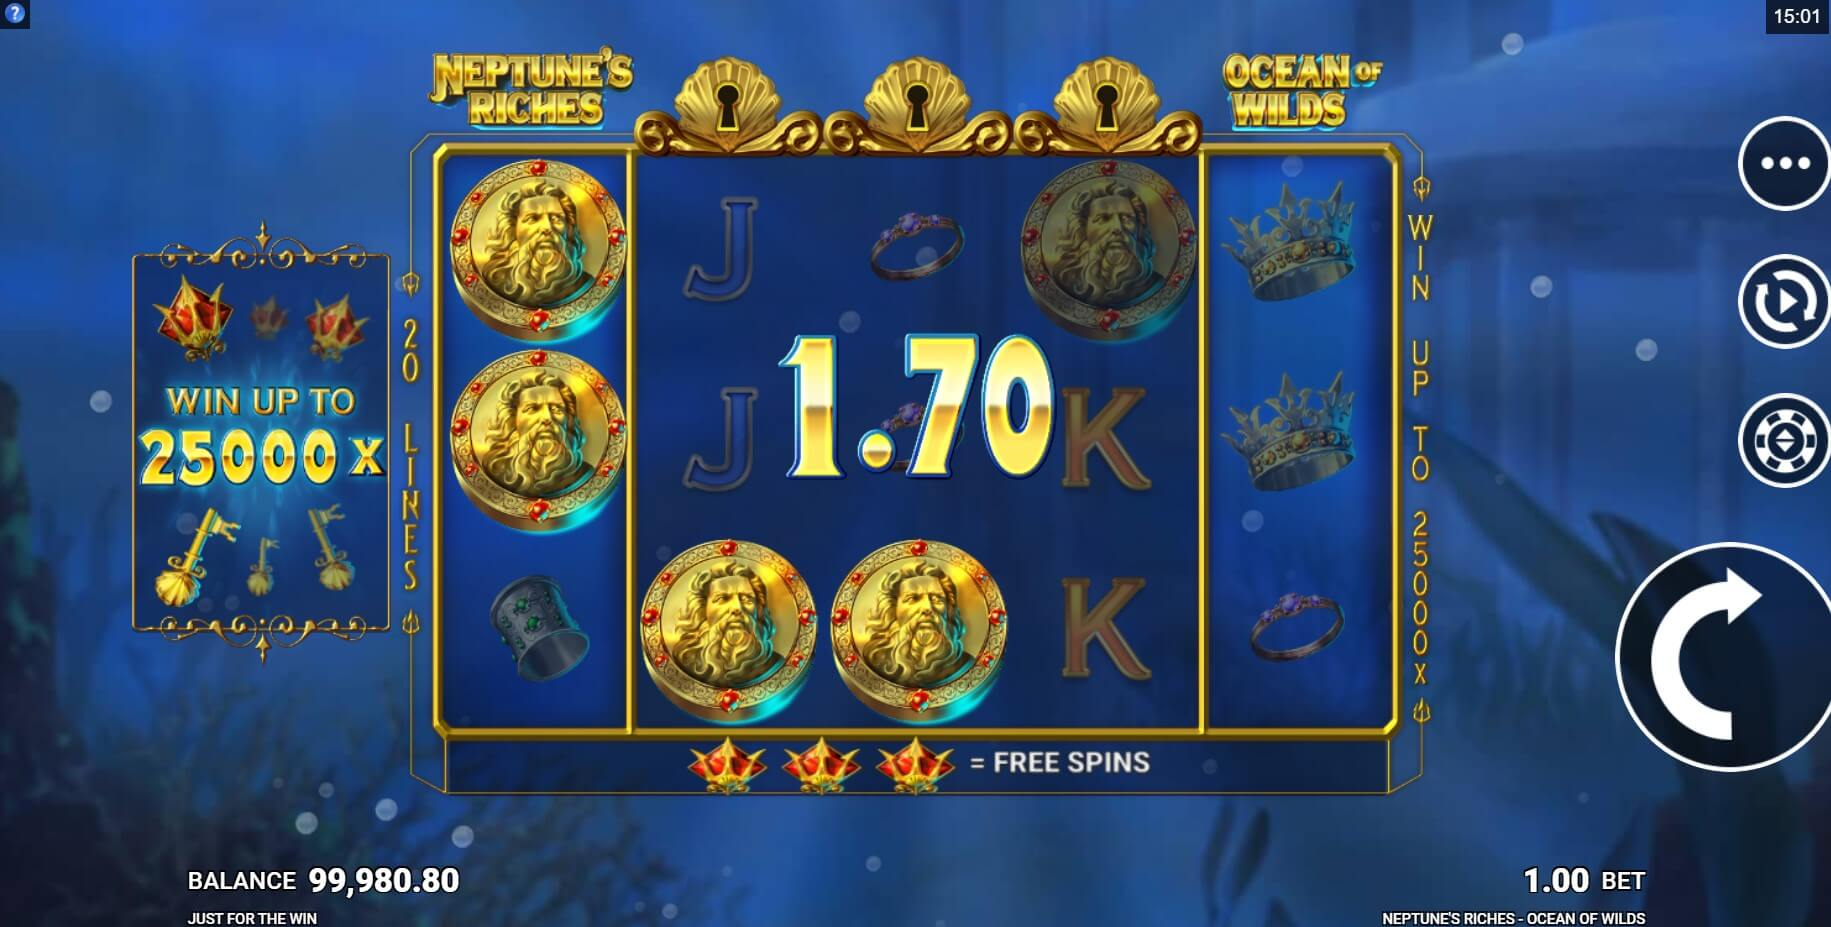 Neptune's Riches: Ocean of Wilds Slot Gameplay